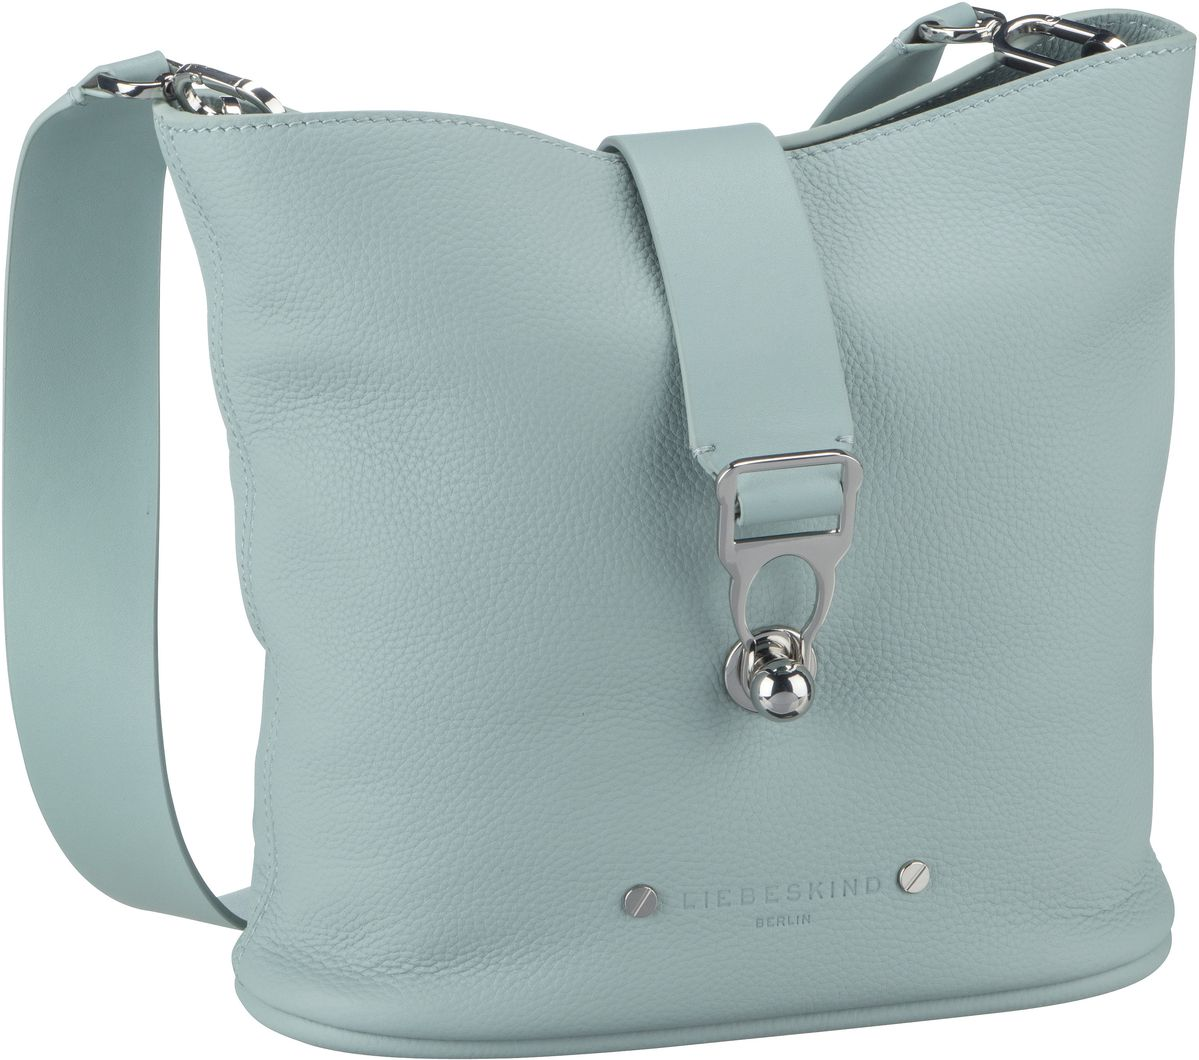 Berlin Umhängetasche Sailor Crossbody M Light Blue Mist